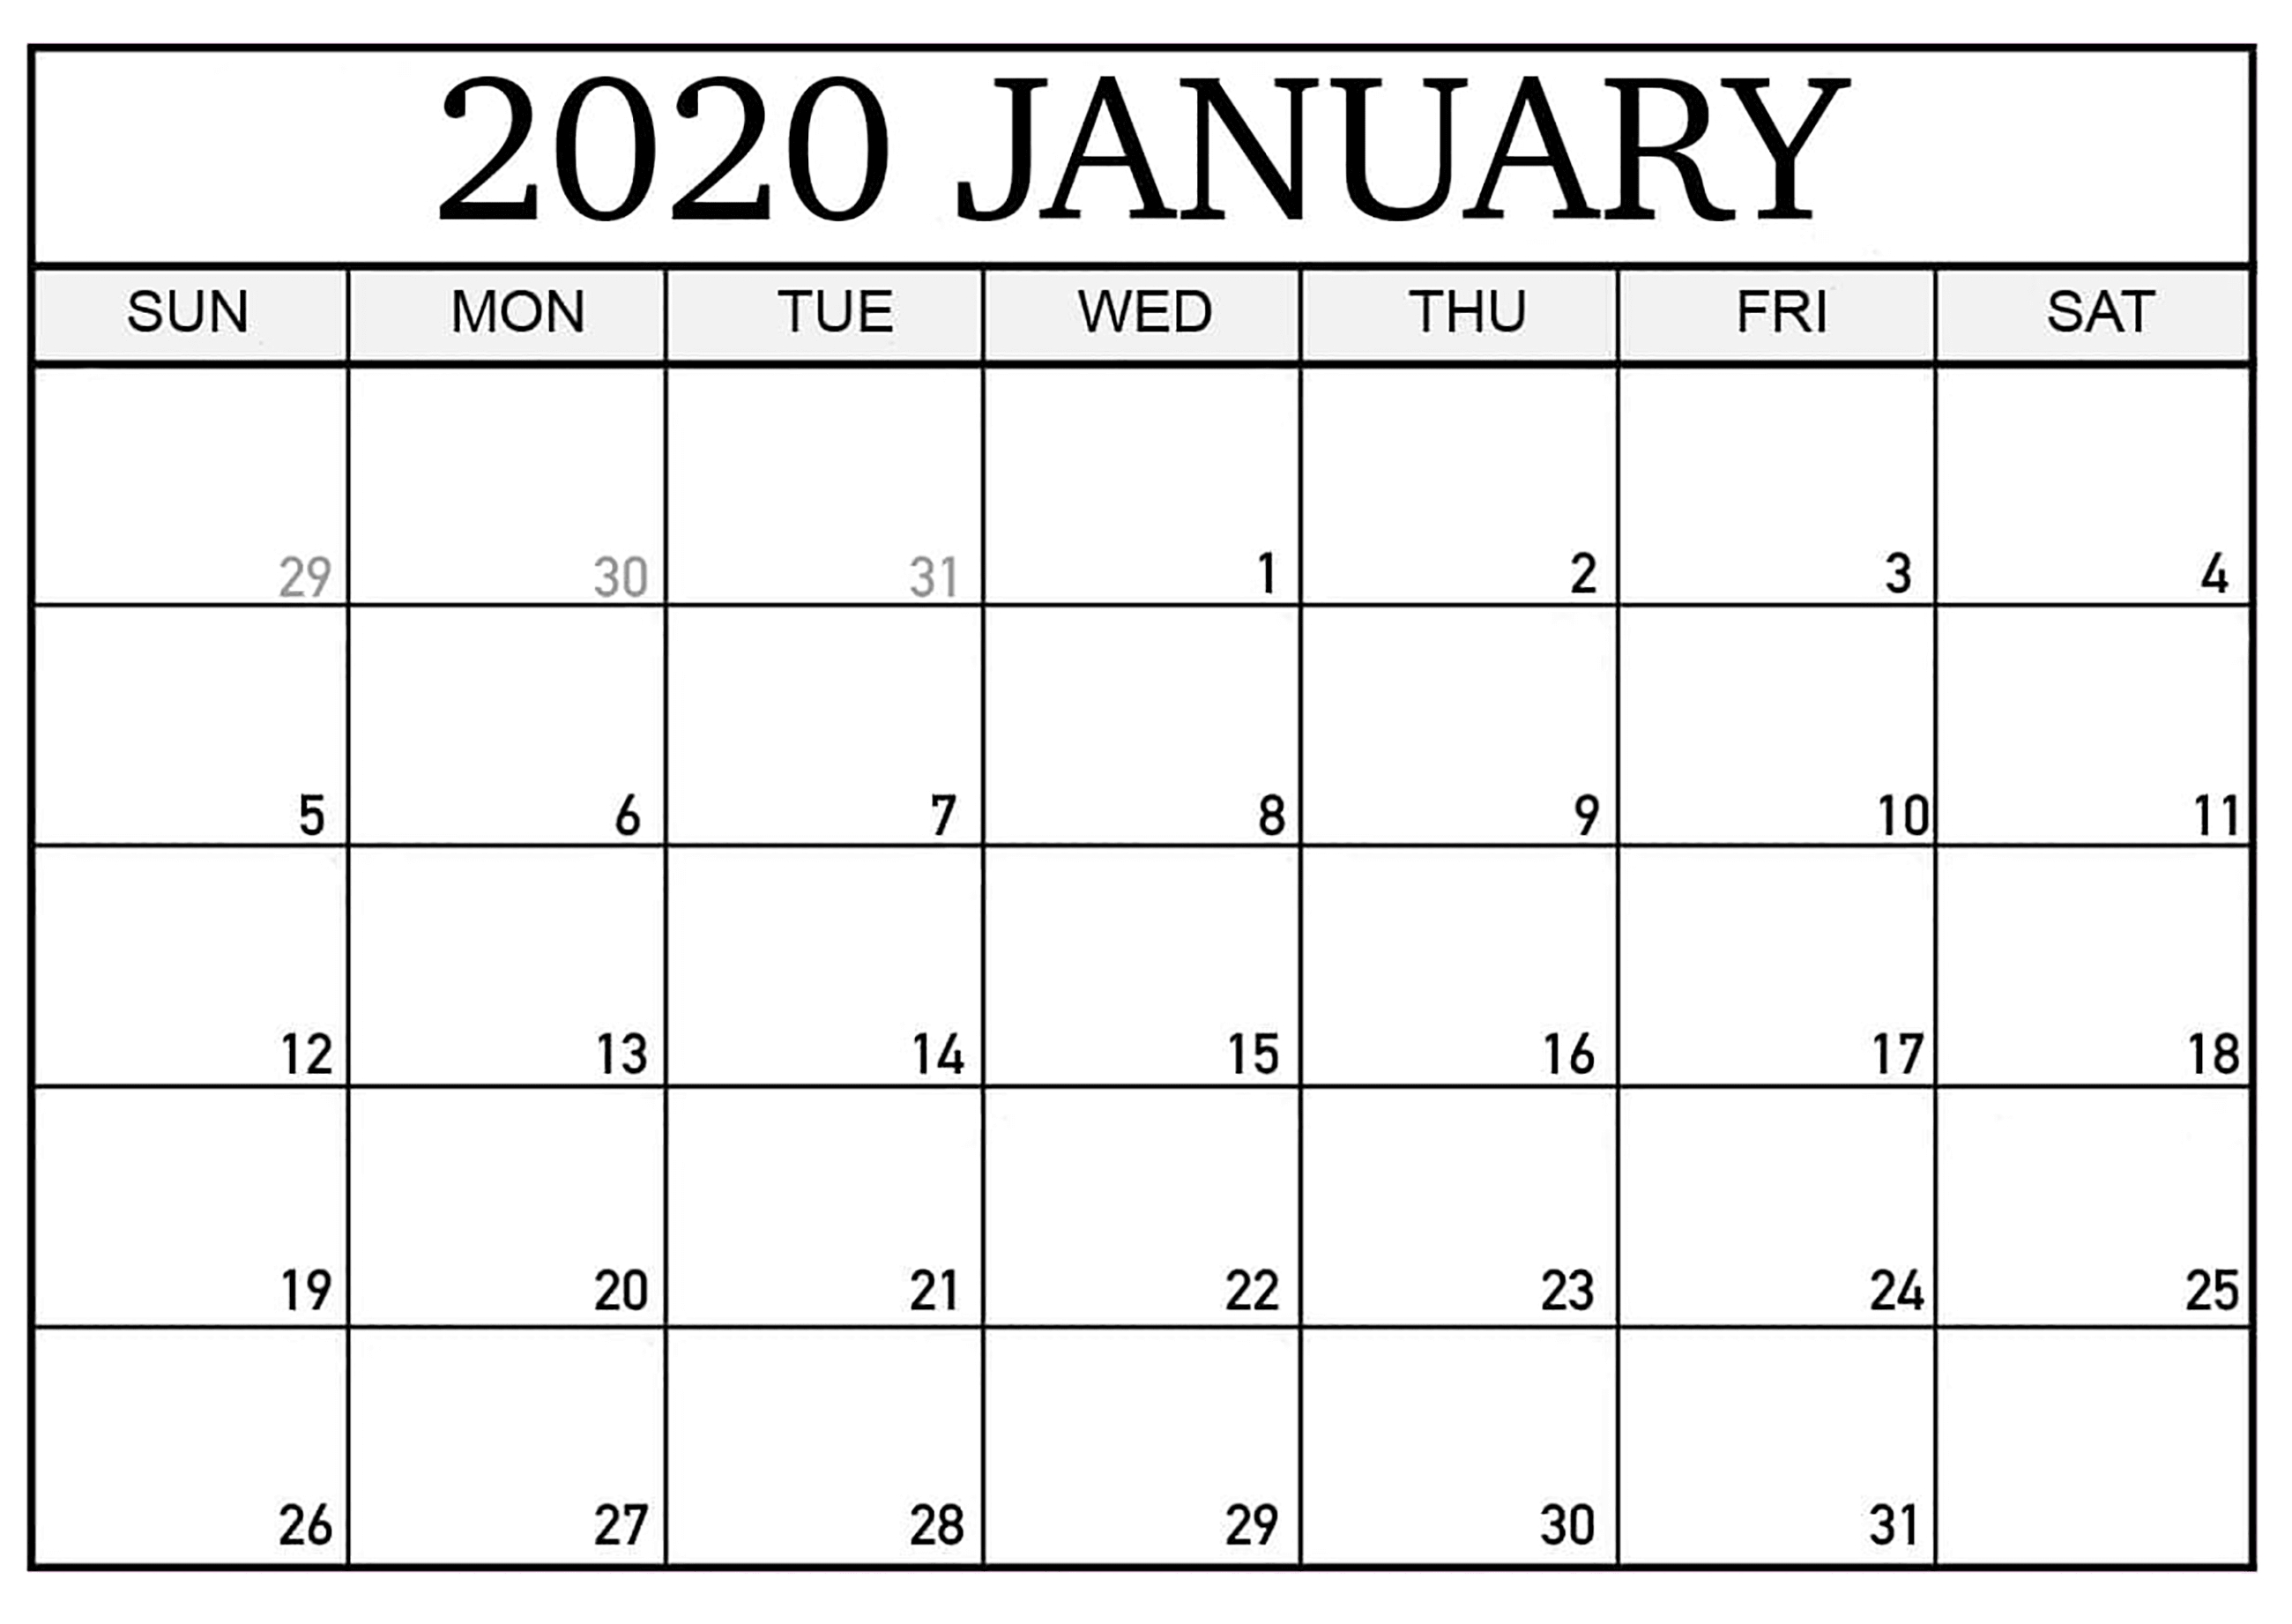 Printable Calendar January 2020 Pdf - 2019 Calendars For January 2020 Printable Calendar Canada